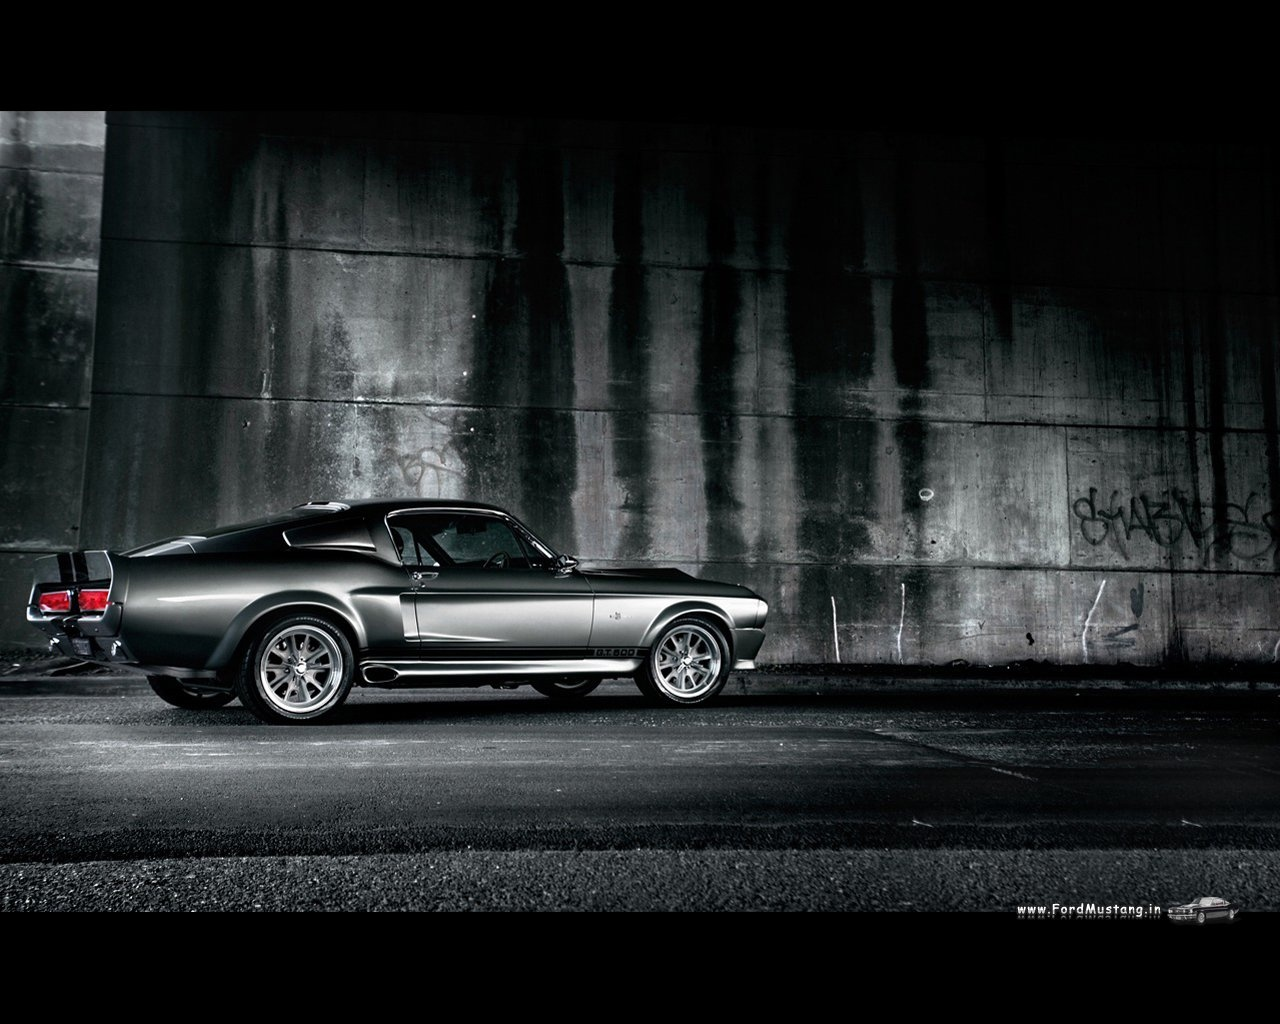 ... Original Link. Download ford mustang shelby gt500 wallpaper ...